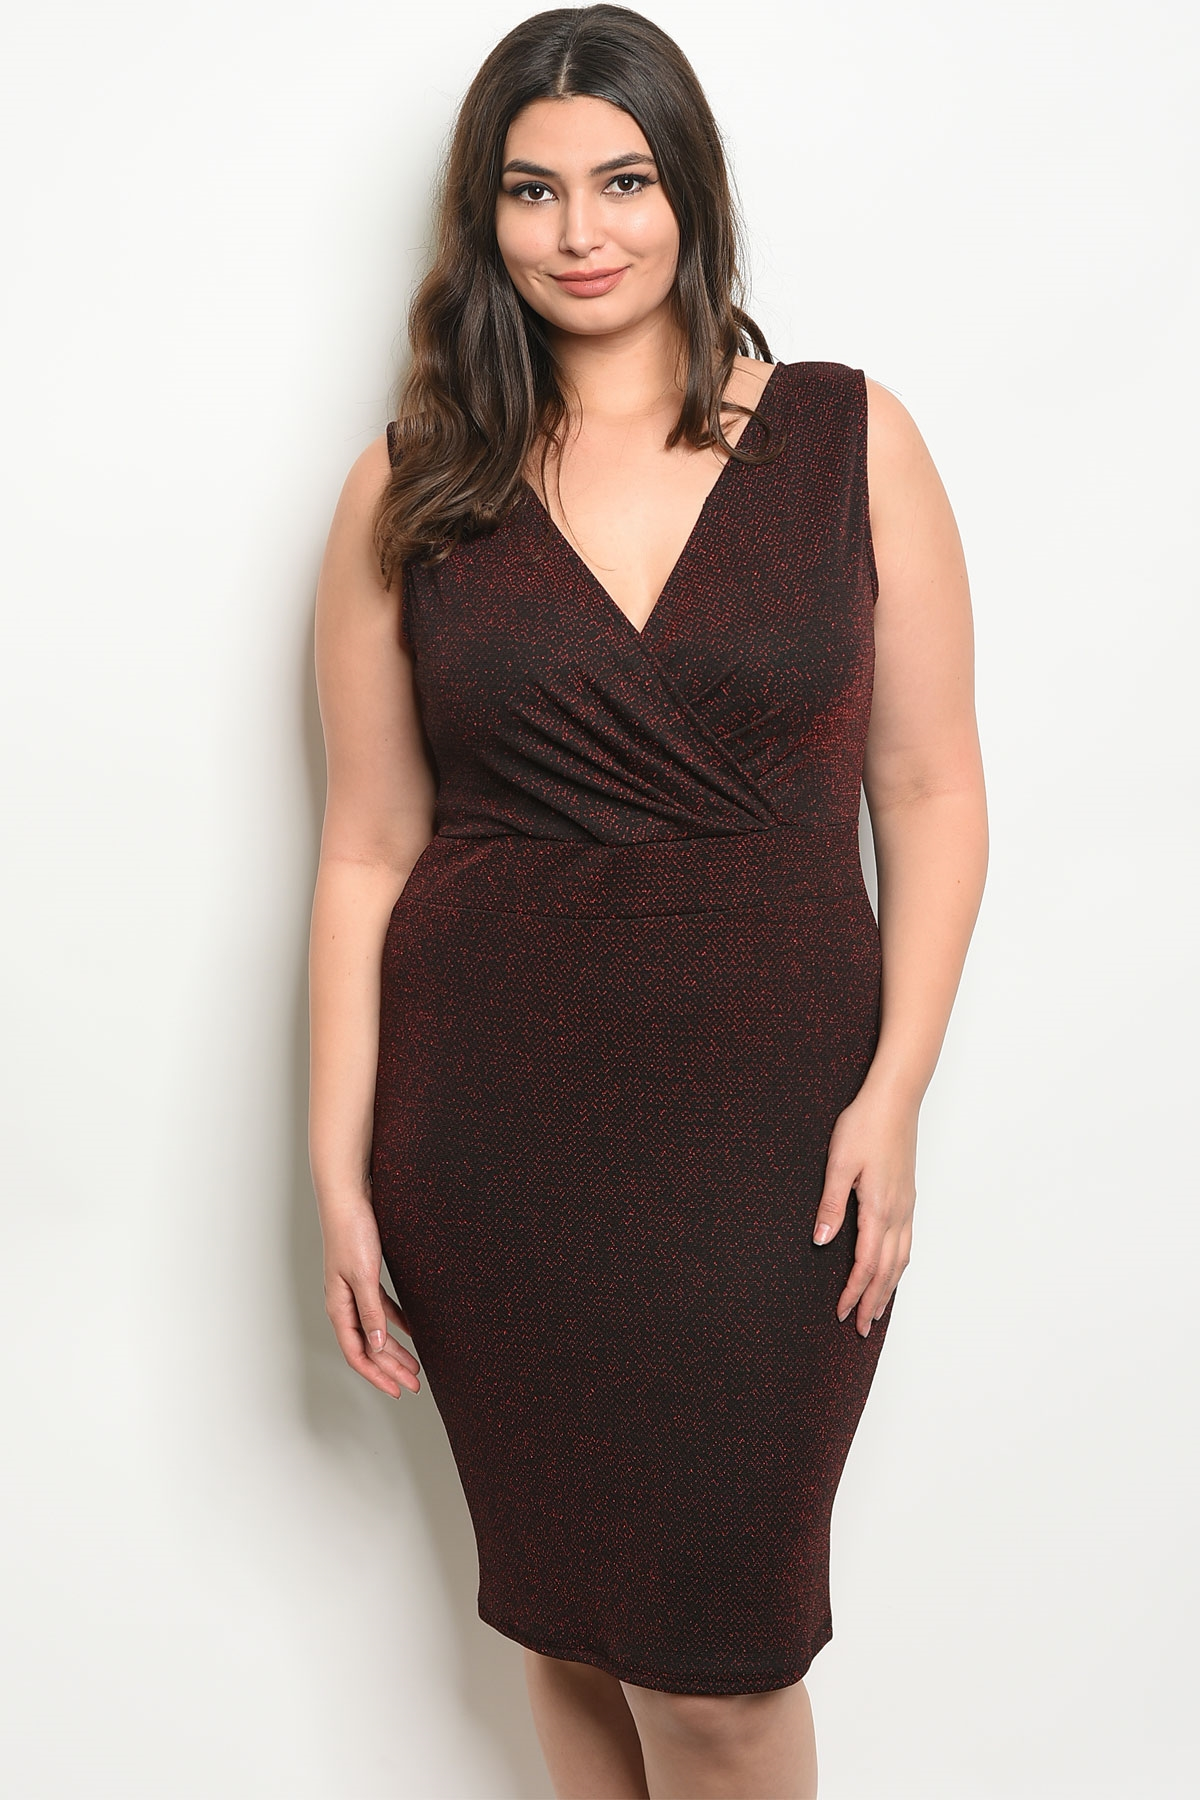 C39-A-1-D9717X BLACK RED SHIMMER PLUS SIZE DRESS 2-2-1